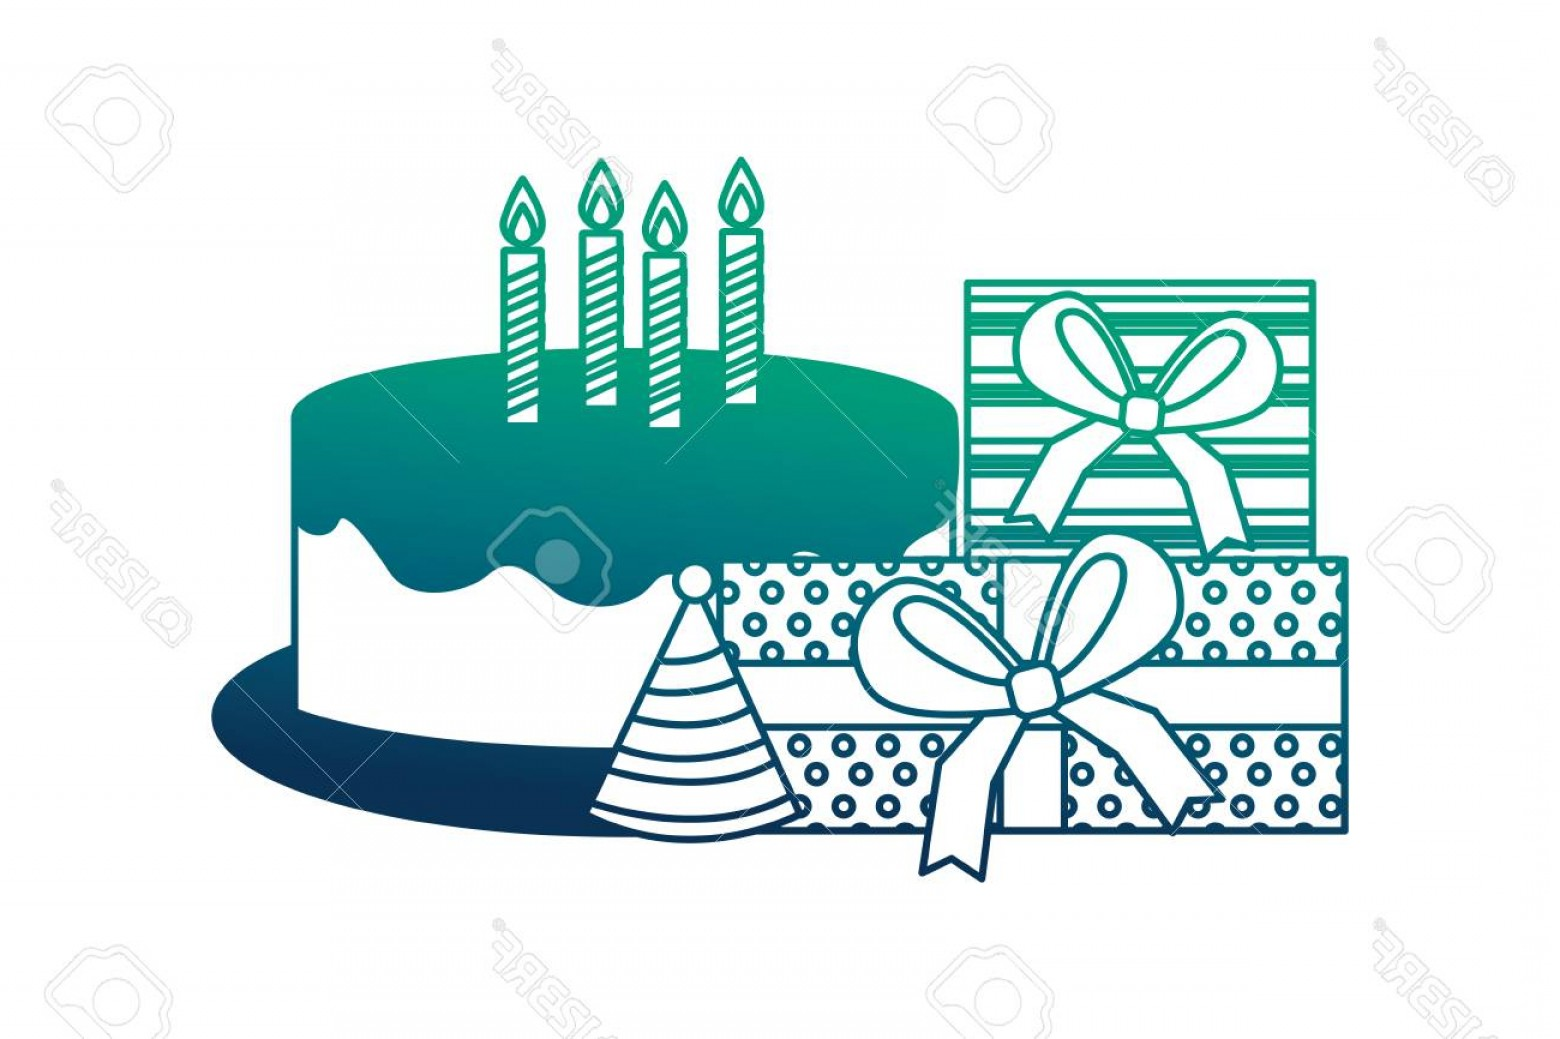 Teal Birthday Hat Vector: Photostock Vector Birthday Cake With Candles Gift Boxes Party Hat Vector Illustration Neon Design